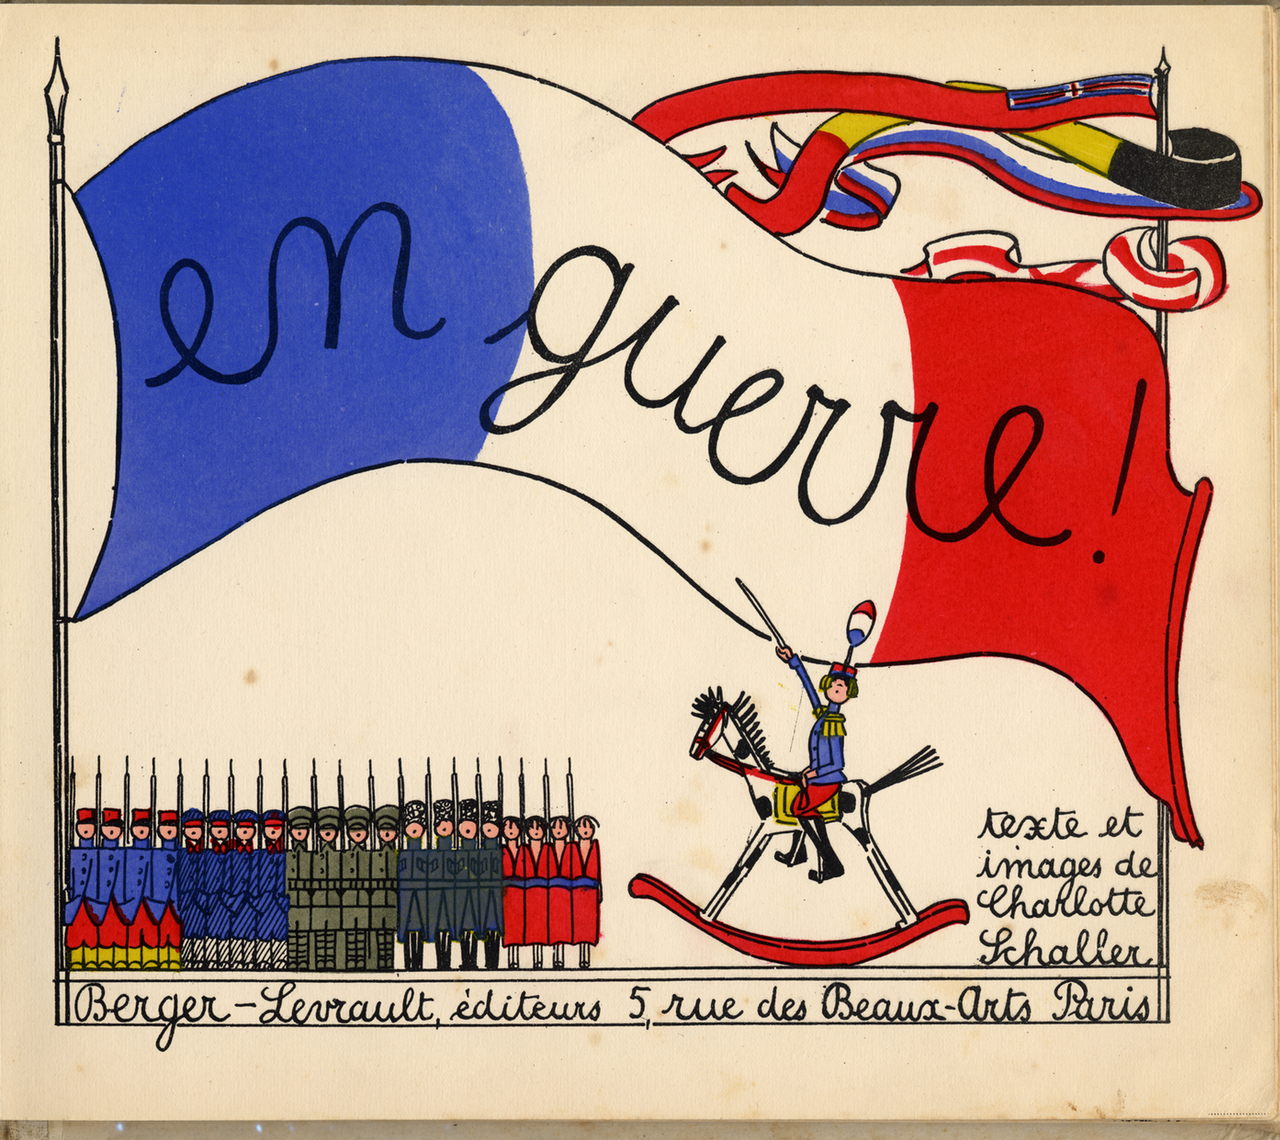 Charlotte Schaller. En guerre! Paris: Berger-Levrault, [1914]. On loan from a private collection.